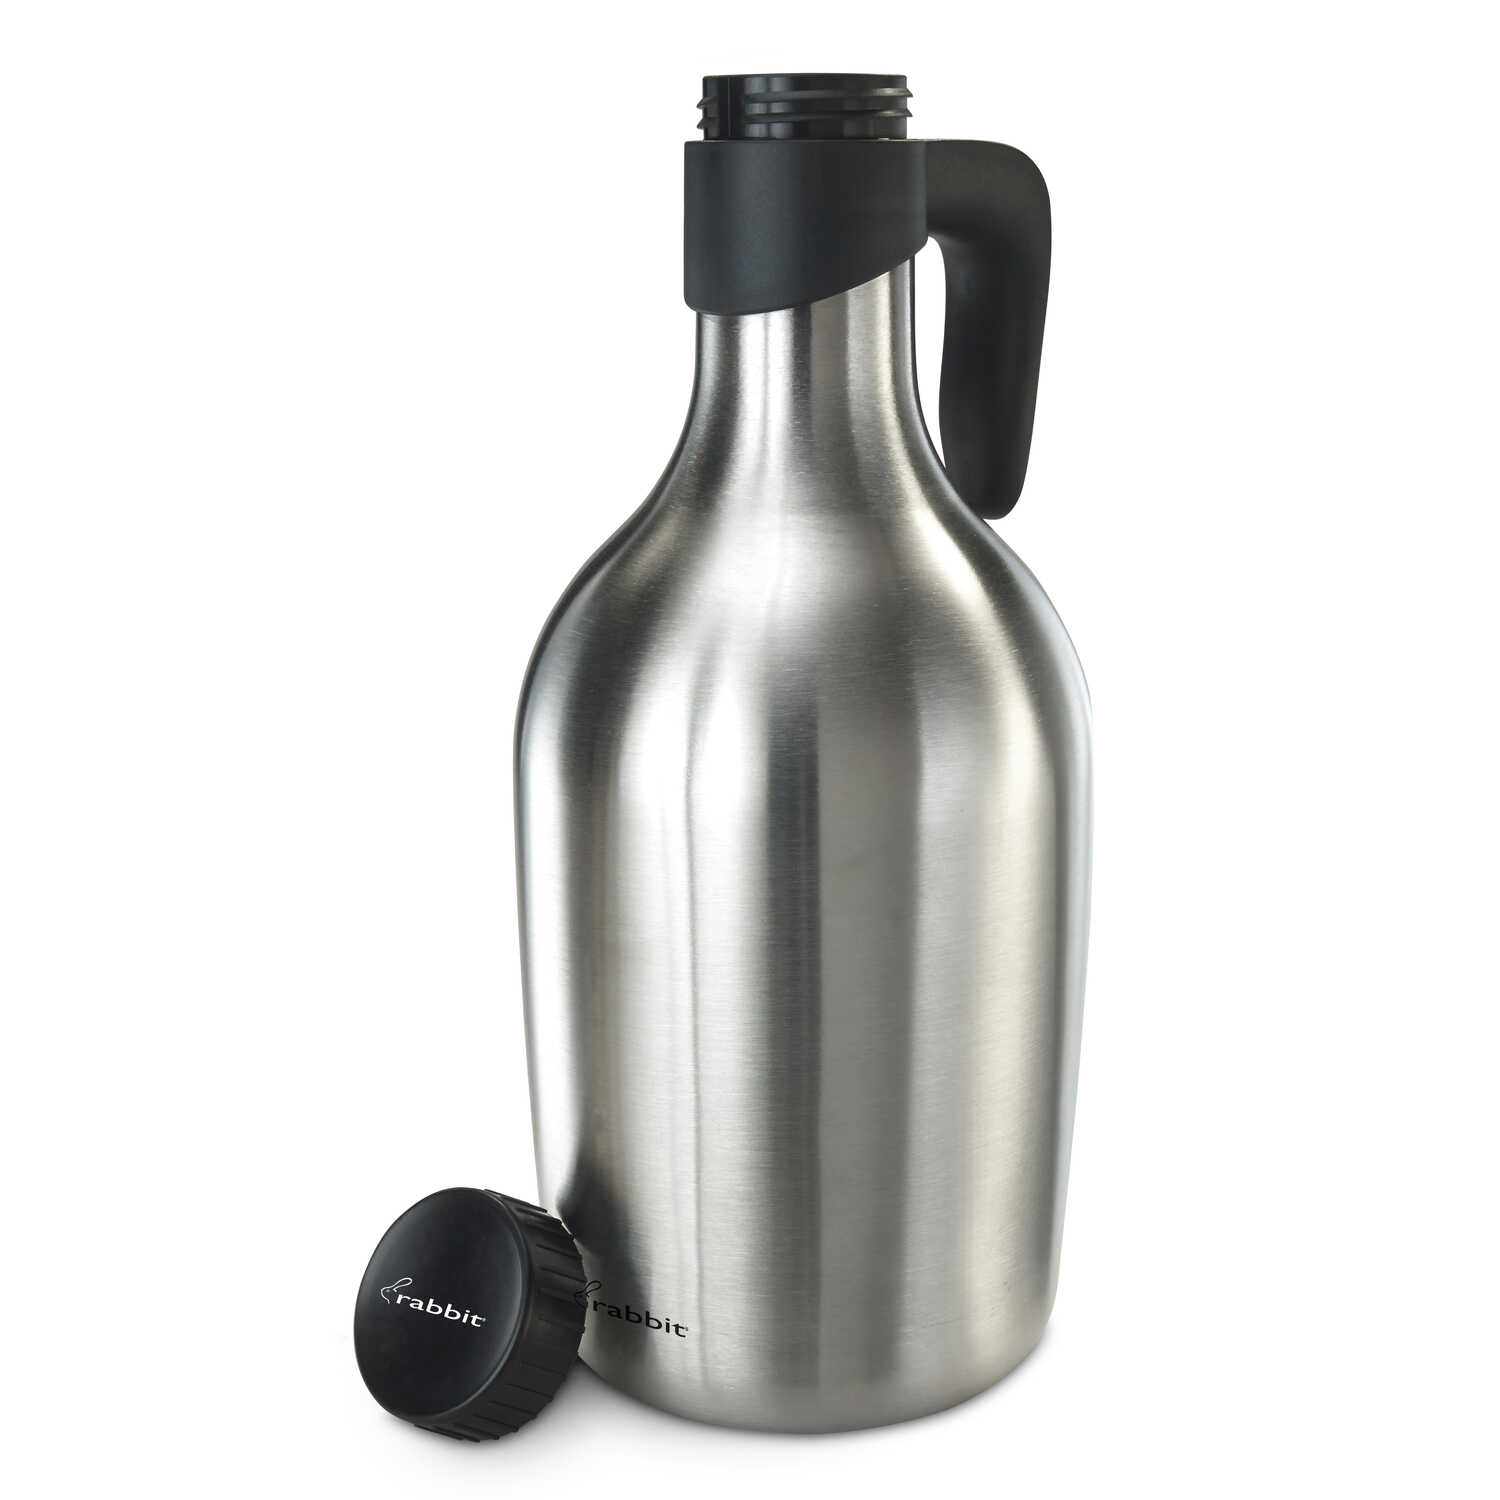 Rabbit  64 ounce oz. Silver  Stainless Steel  Beer Growler